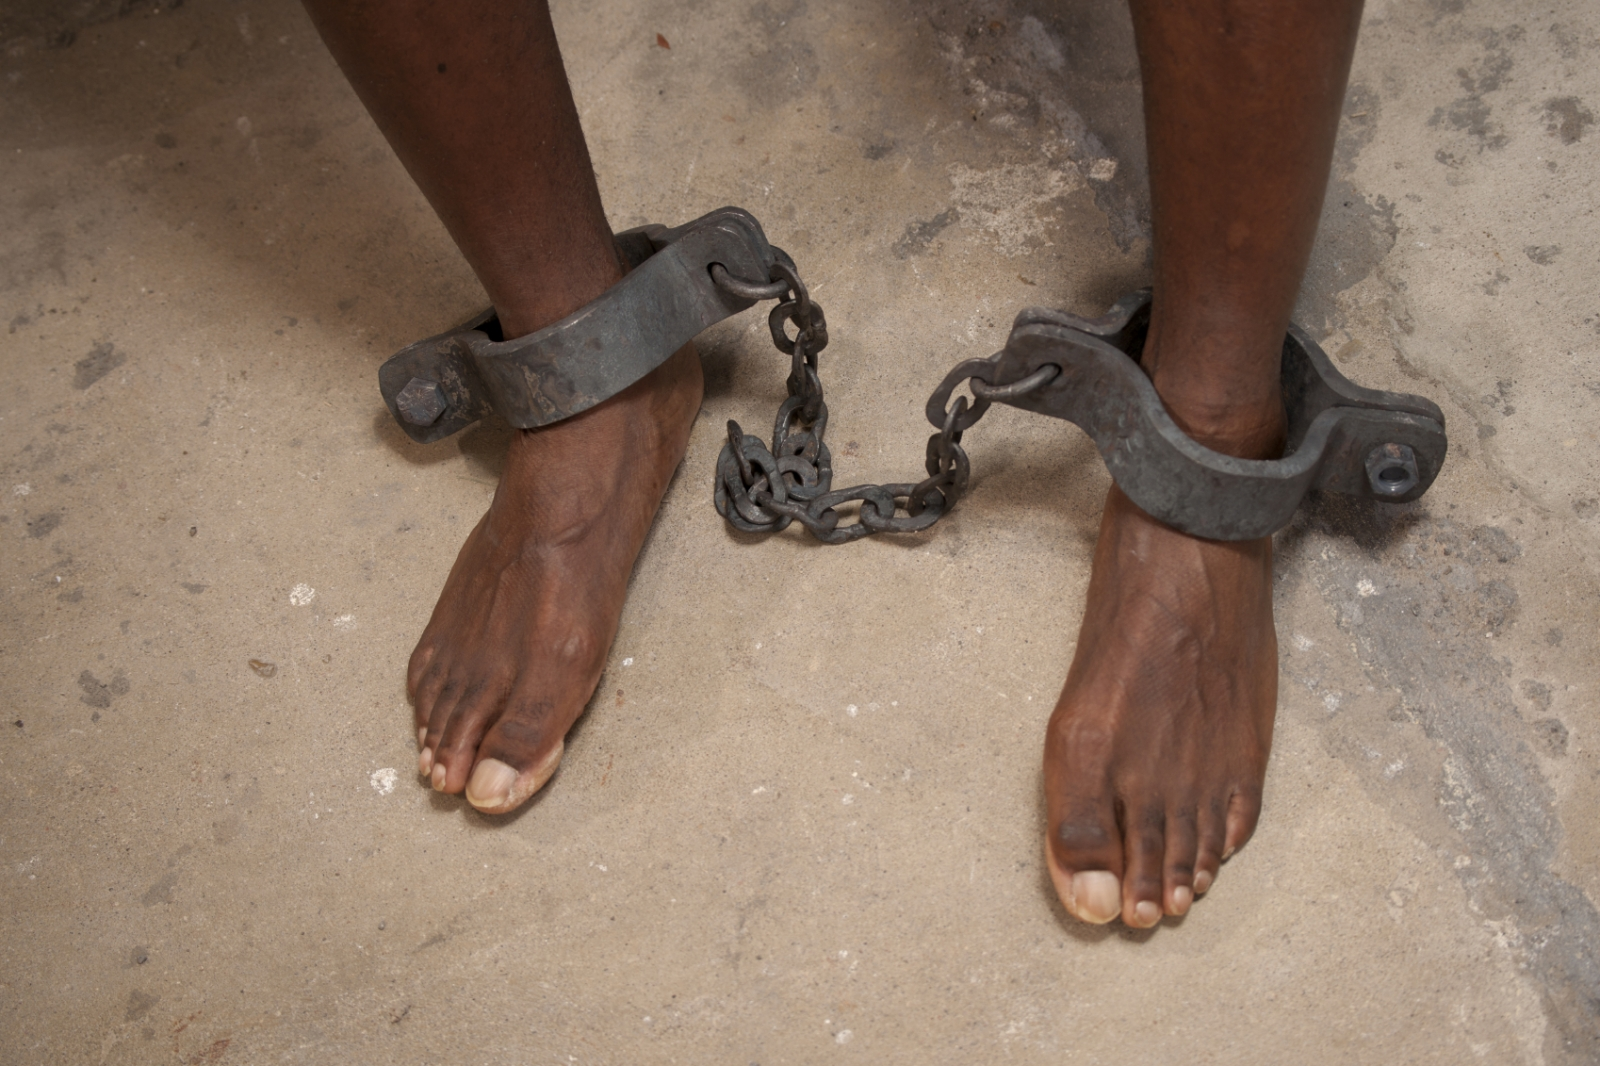 Human trafficking and slave labour